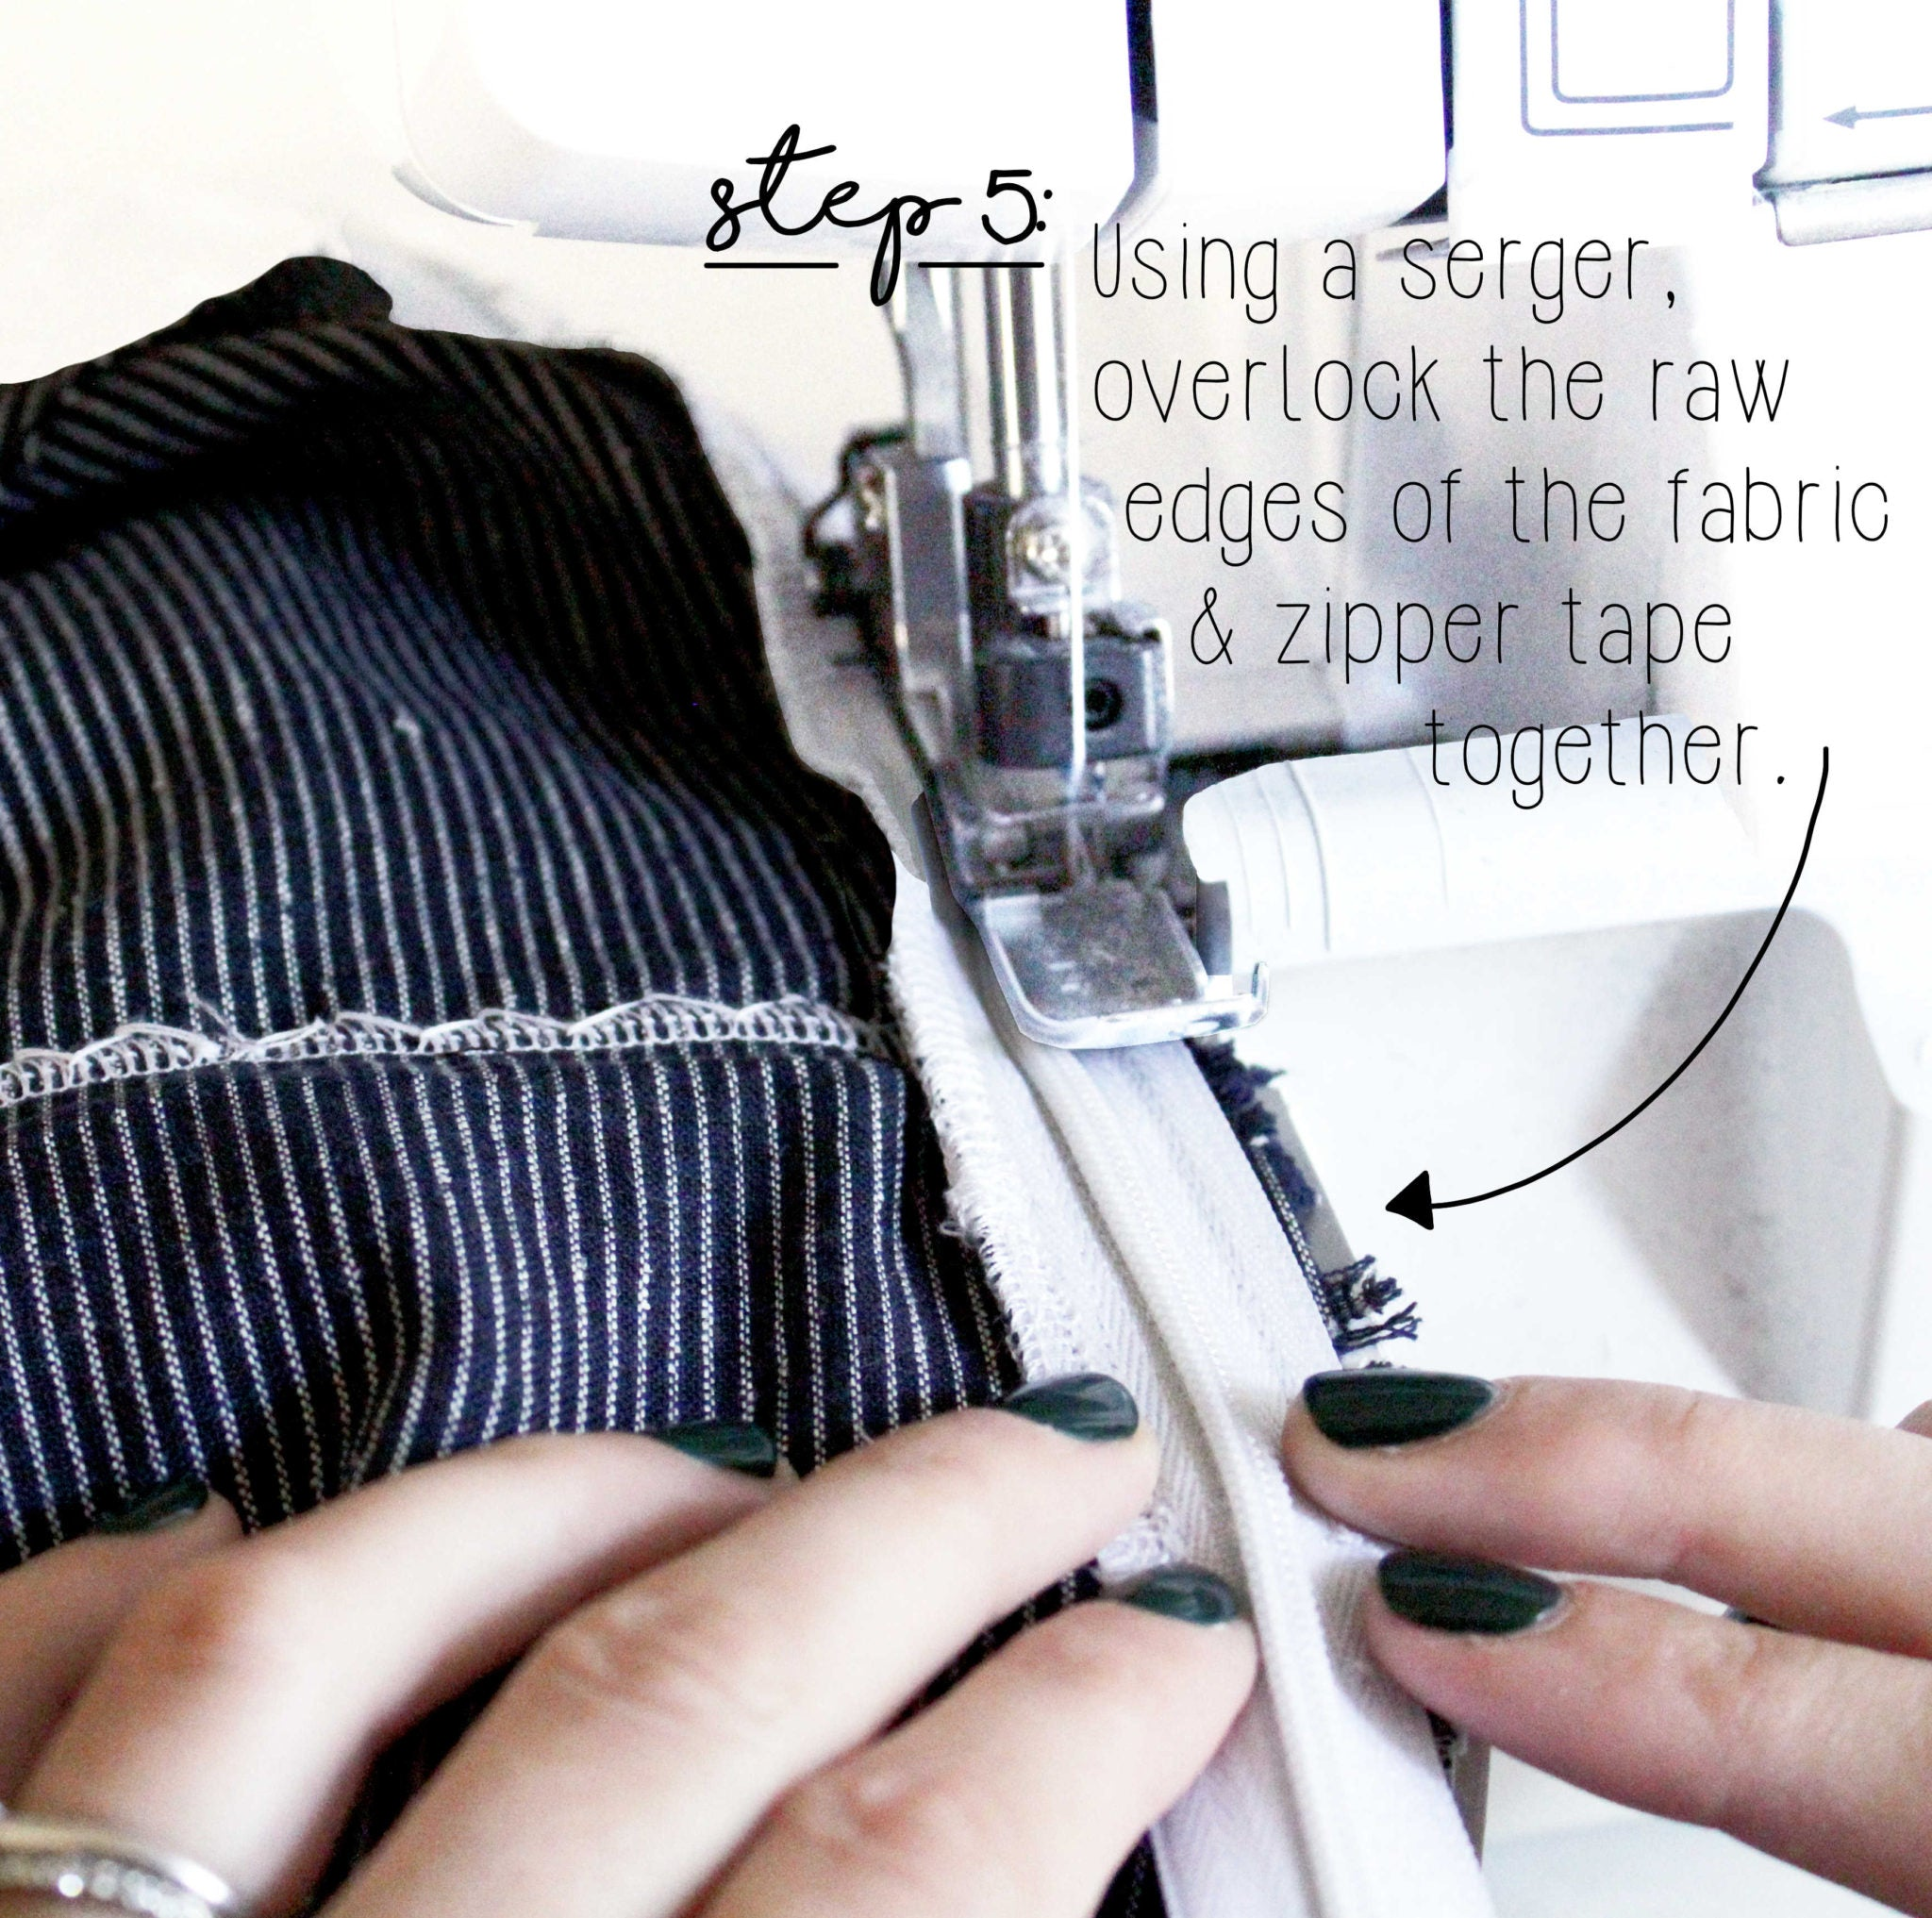 How To Sew An Invisible Zipper Sewing Tutorial: Step 5